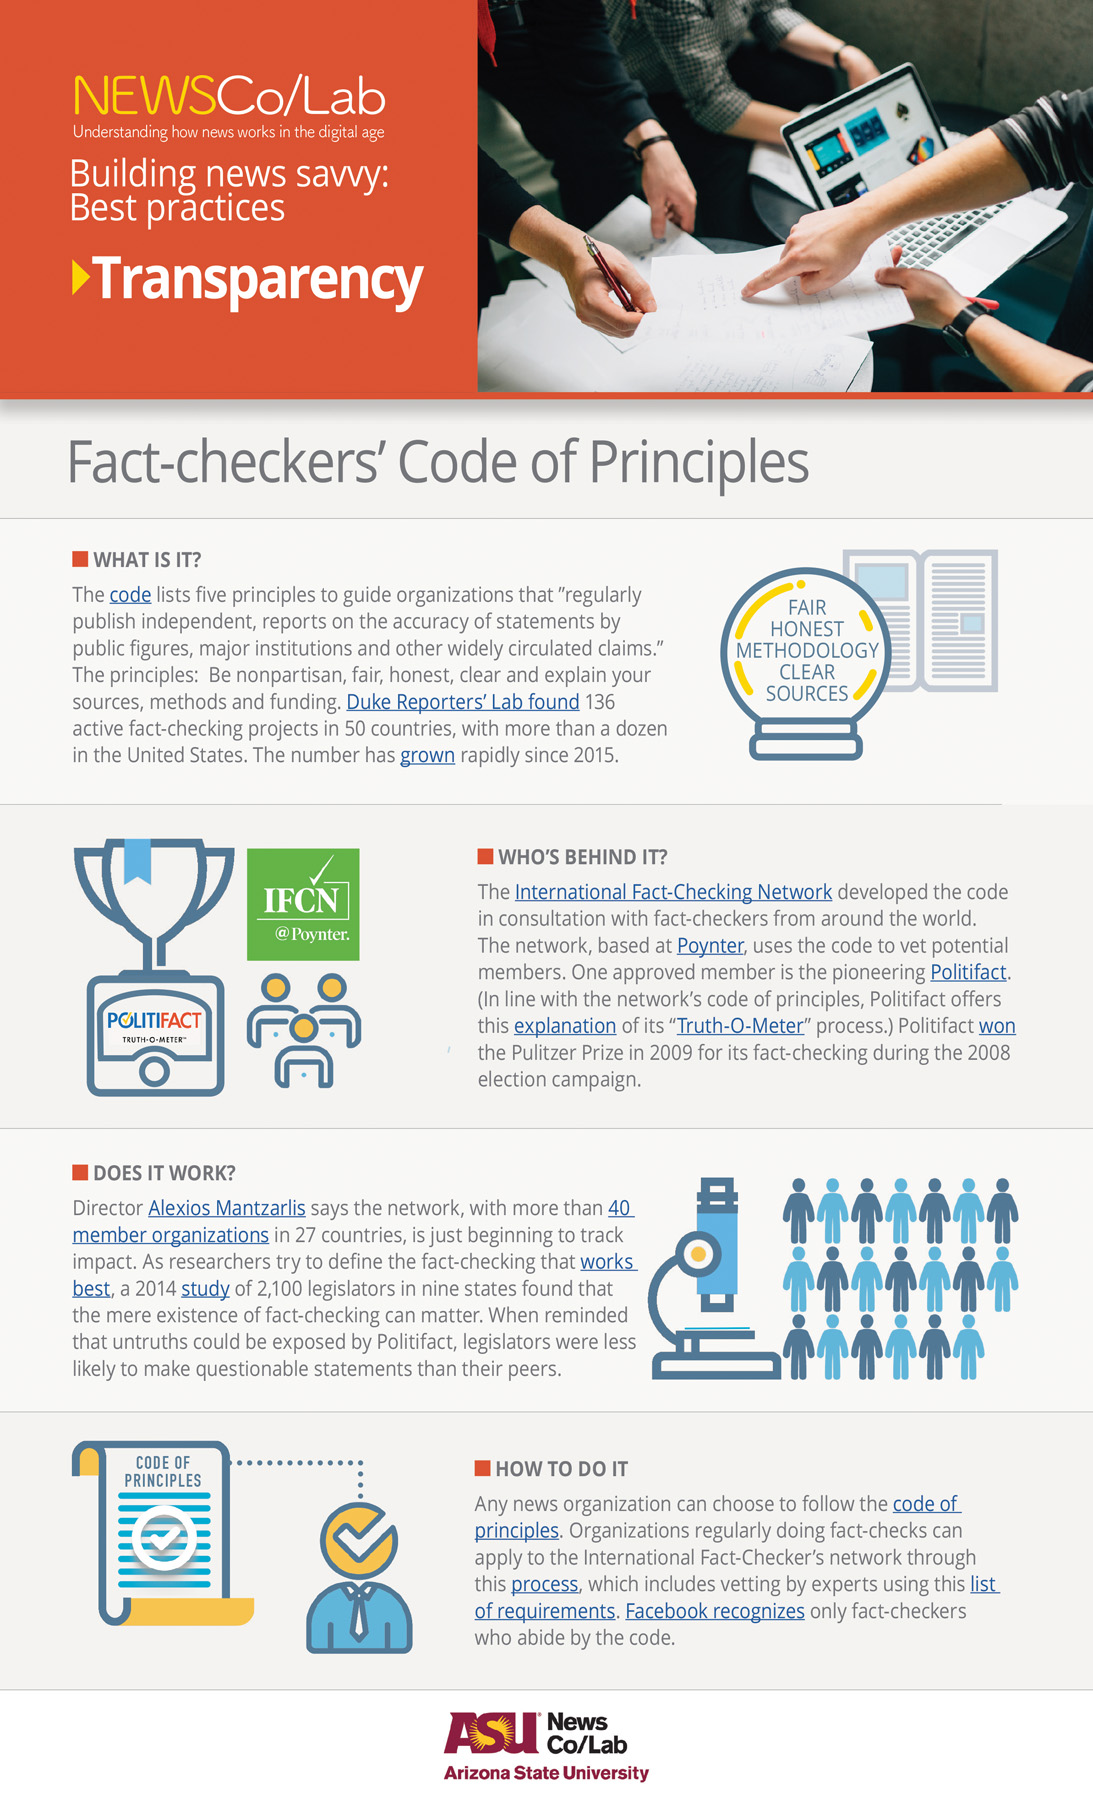 Best Practice: International Fact-Checking Network